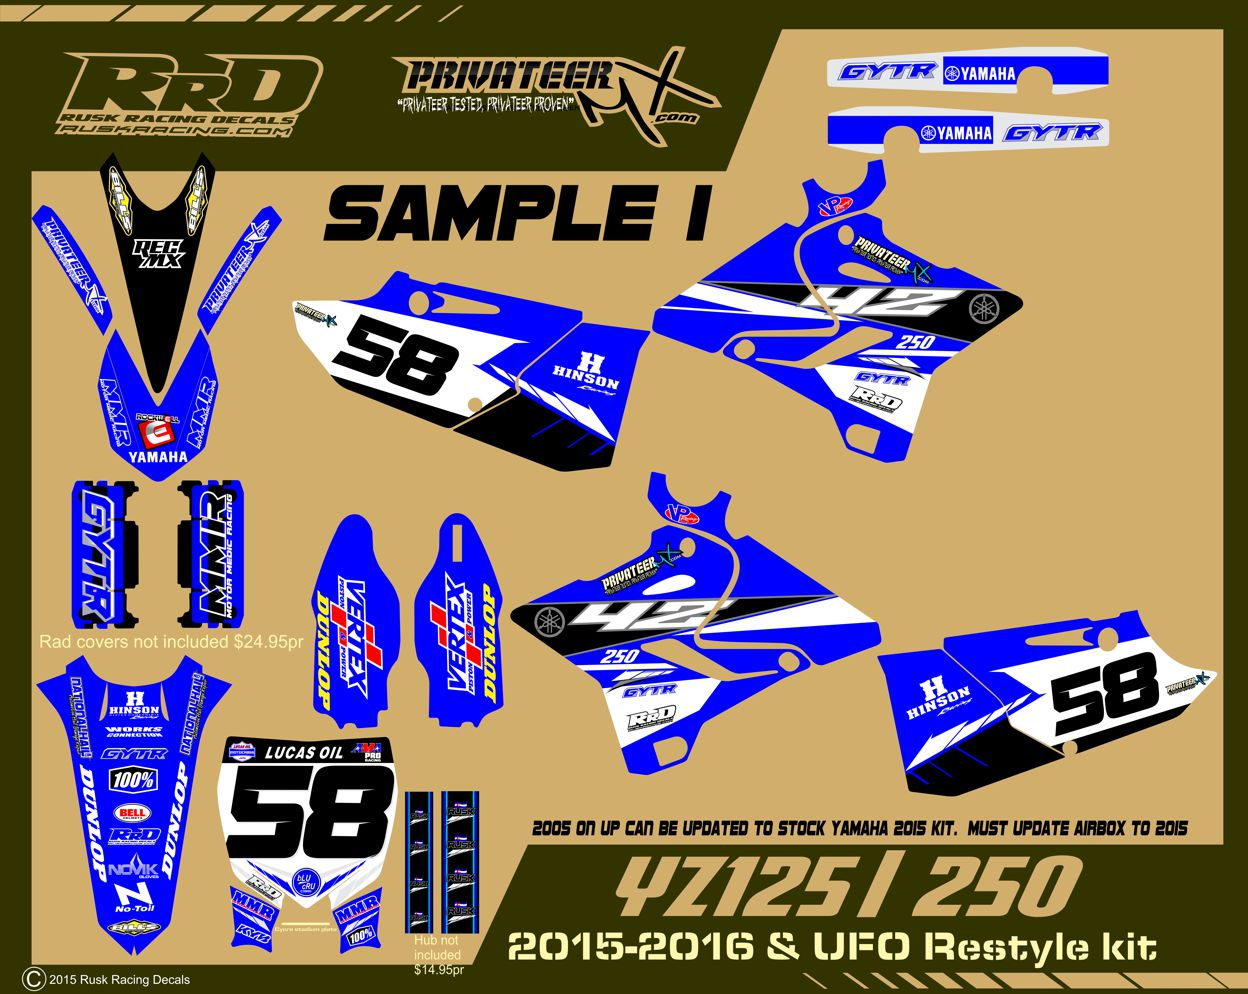 Yamaha bike sticker designs -  Click On Images For Large View